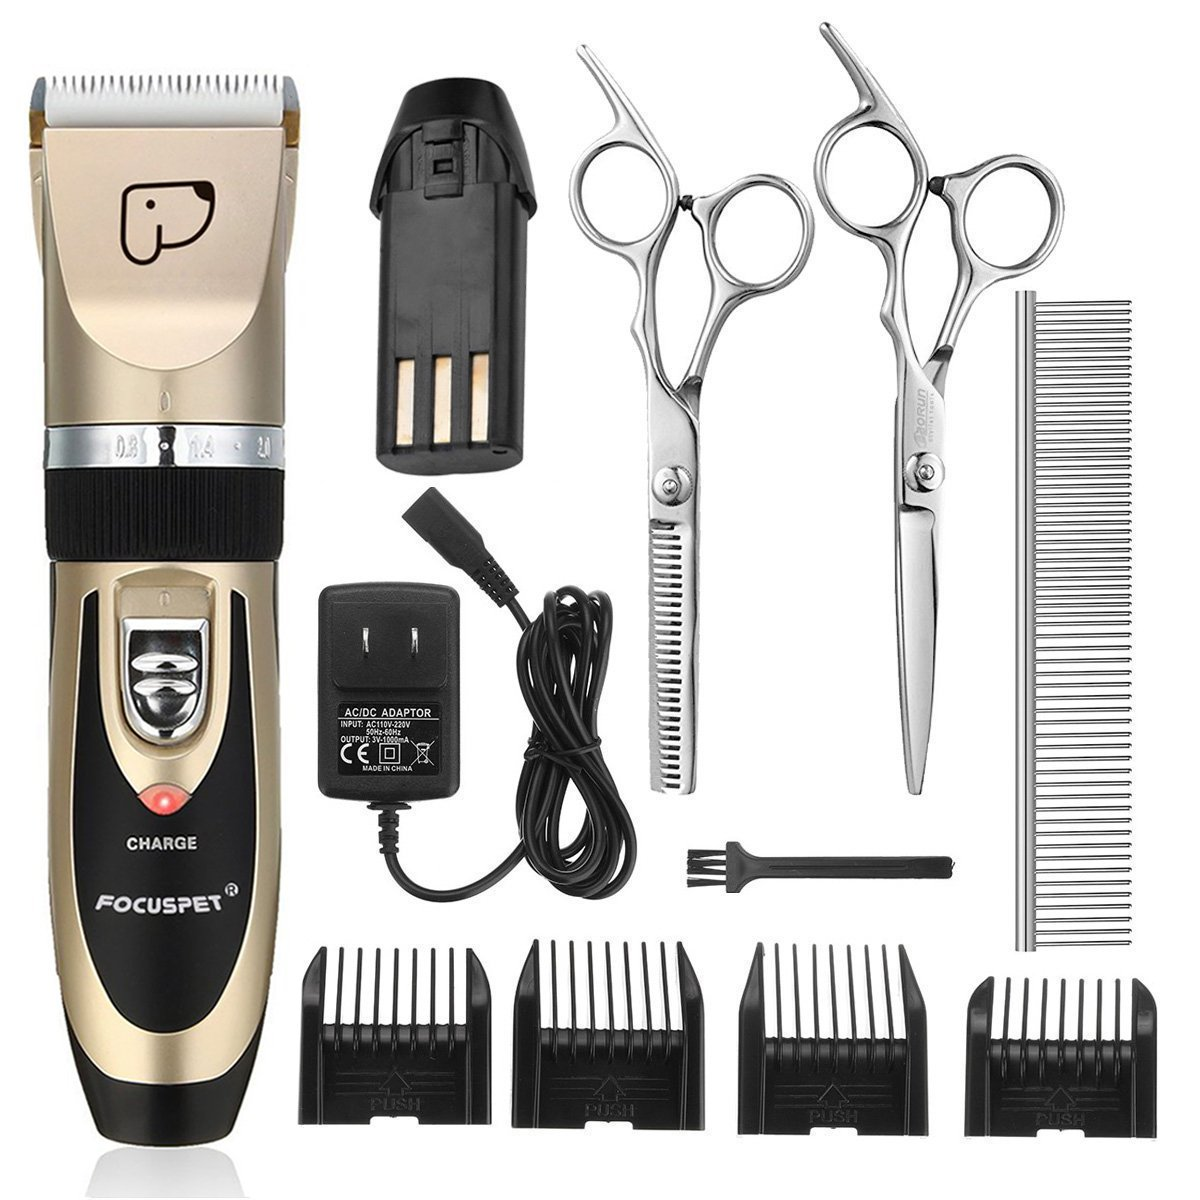 FOCUSPET Pet Grooming Clippers, Low Noise Professional Rechargeable Cordless Dog Grooming Clippers Kit Electric Hair Trimming Clippers Set Dogs Cats Other Animals (Gold&Black) by FOCUSPET (Image #1)